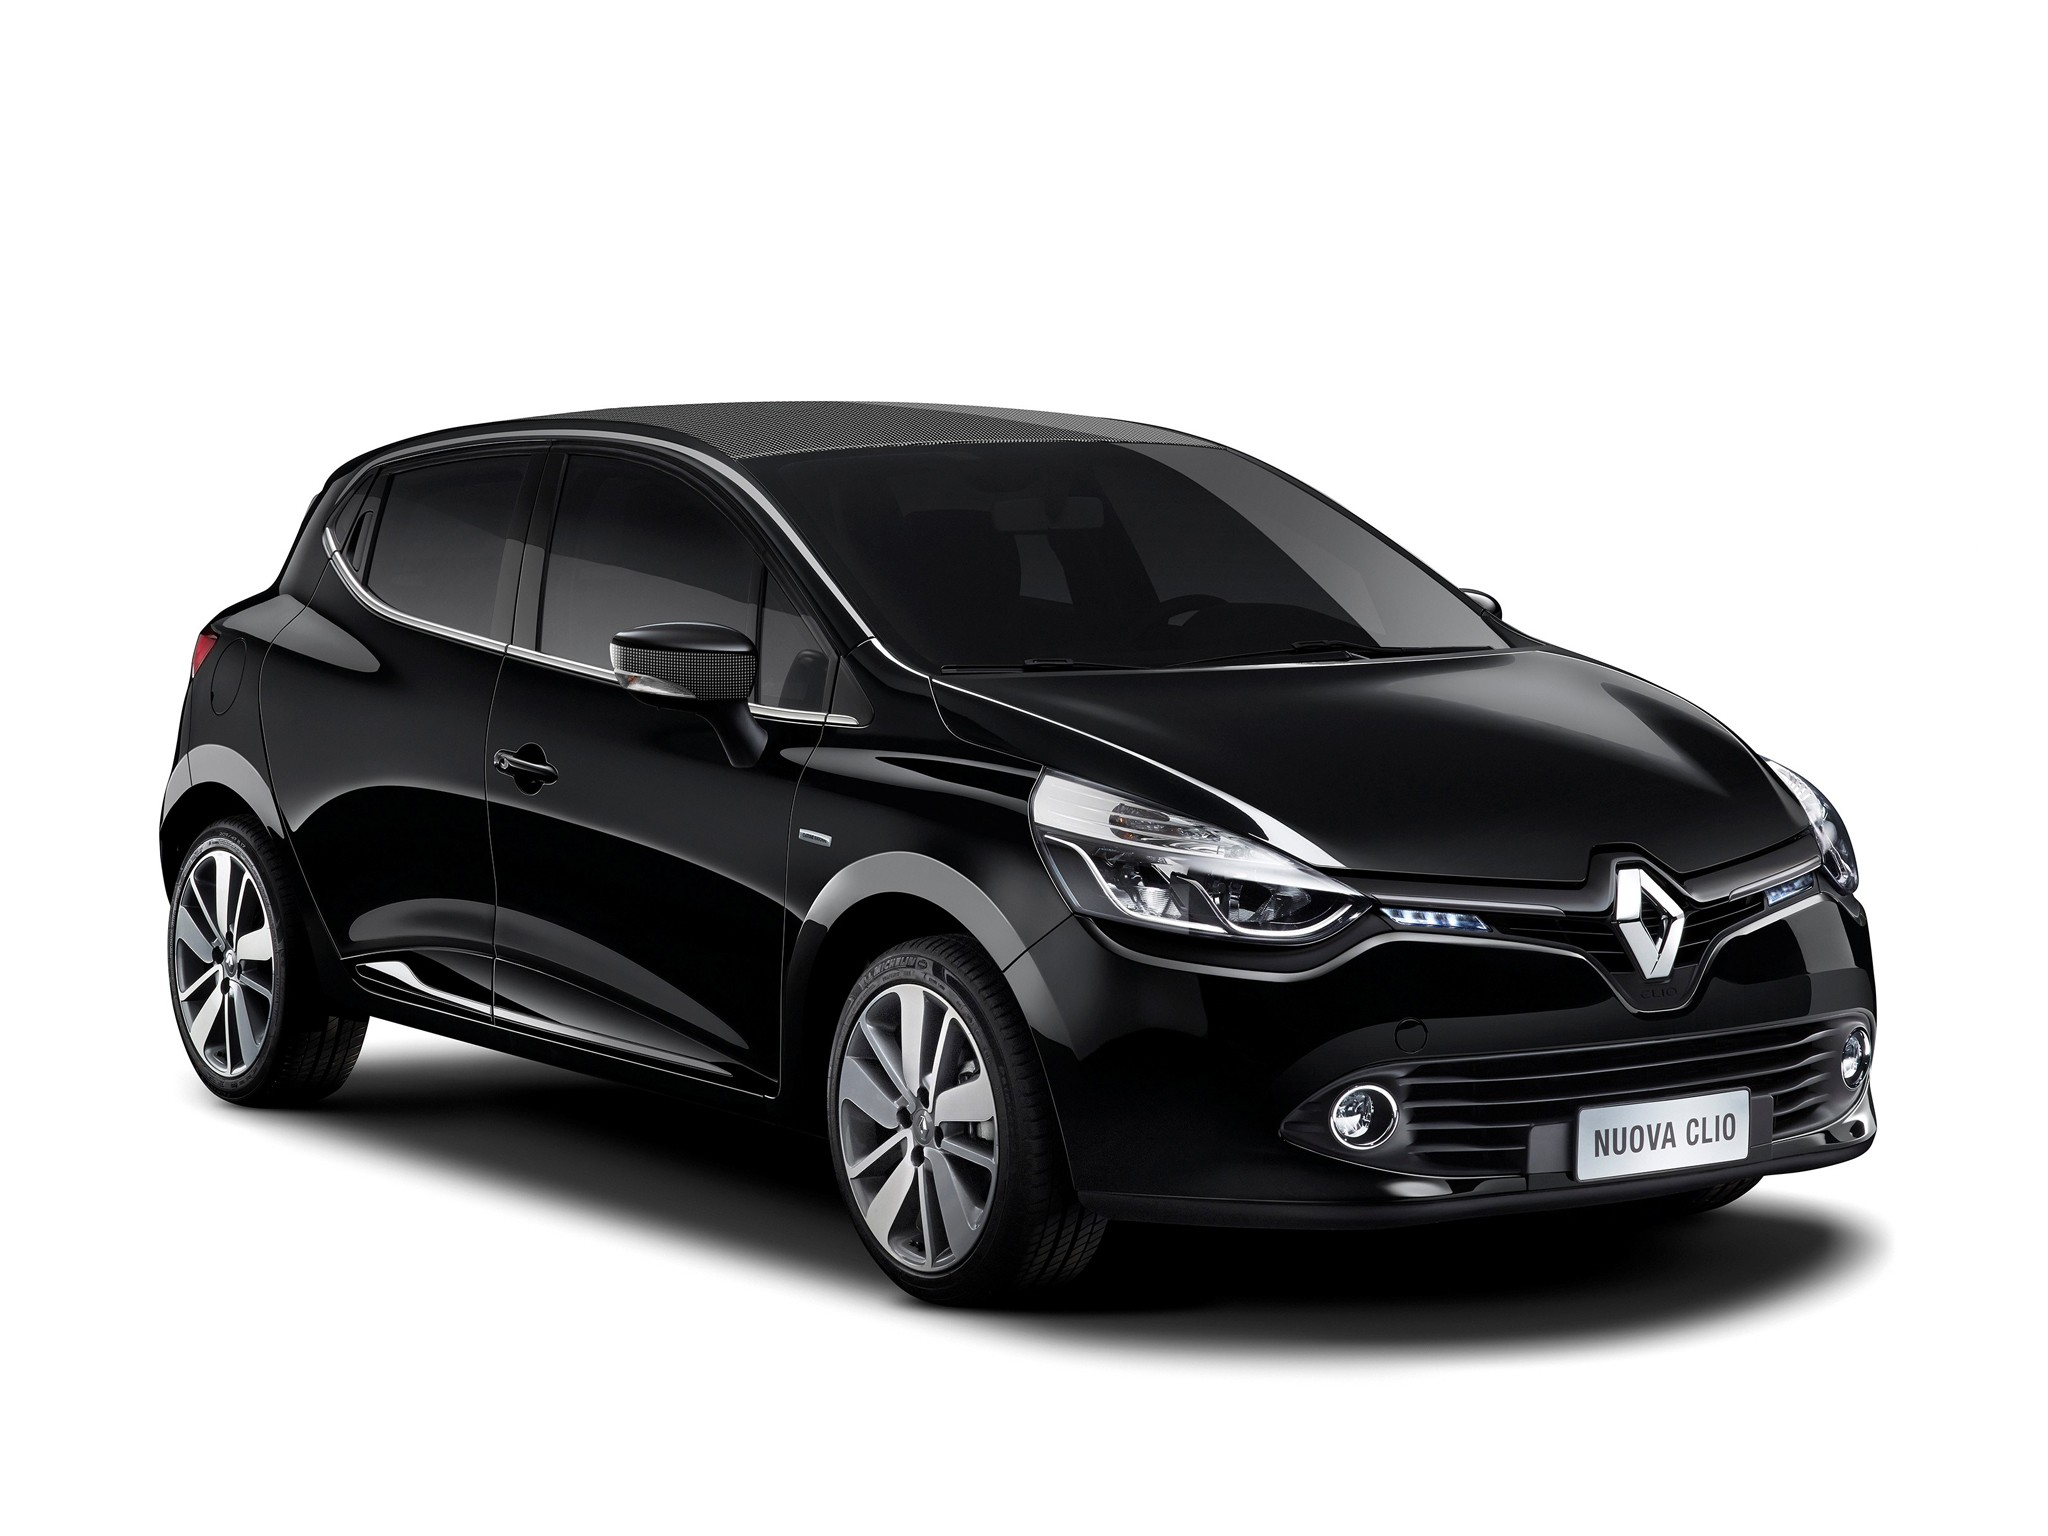 renault clio 5 doors 2012 2013 2014 2015 2016 autoevolution. Black Bedroom Furniture Sets. Home Design Ideas